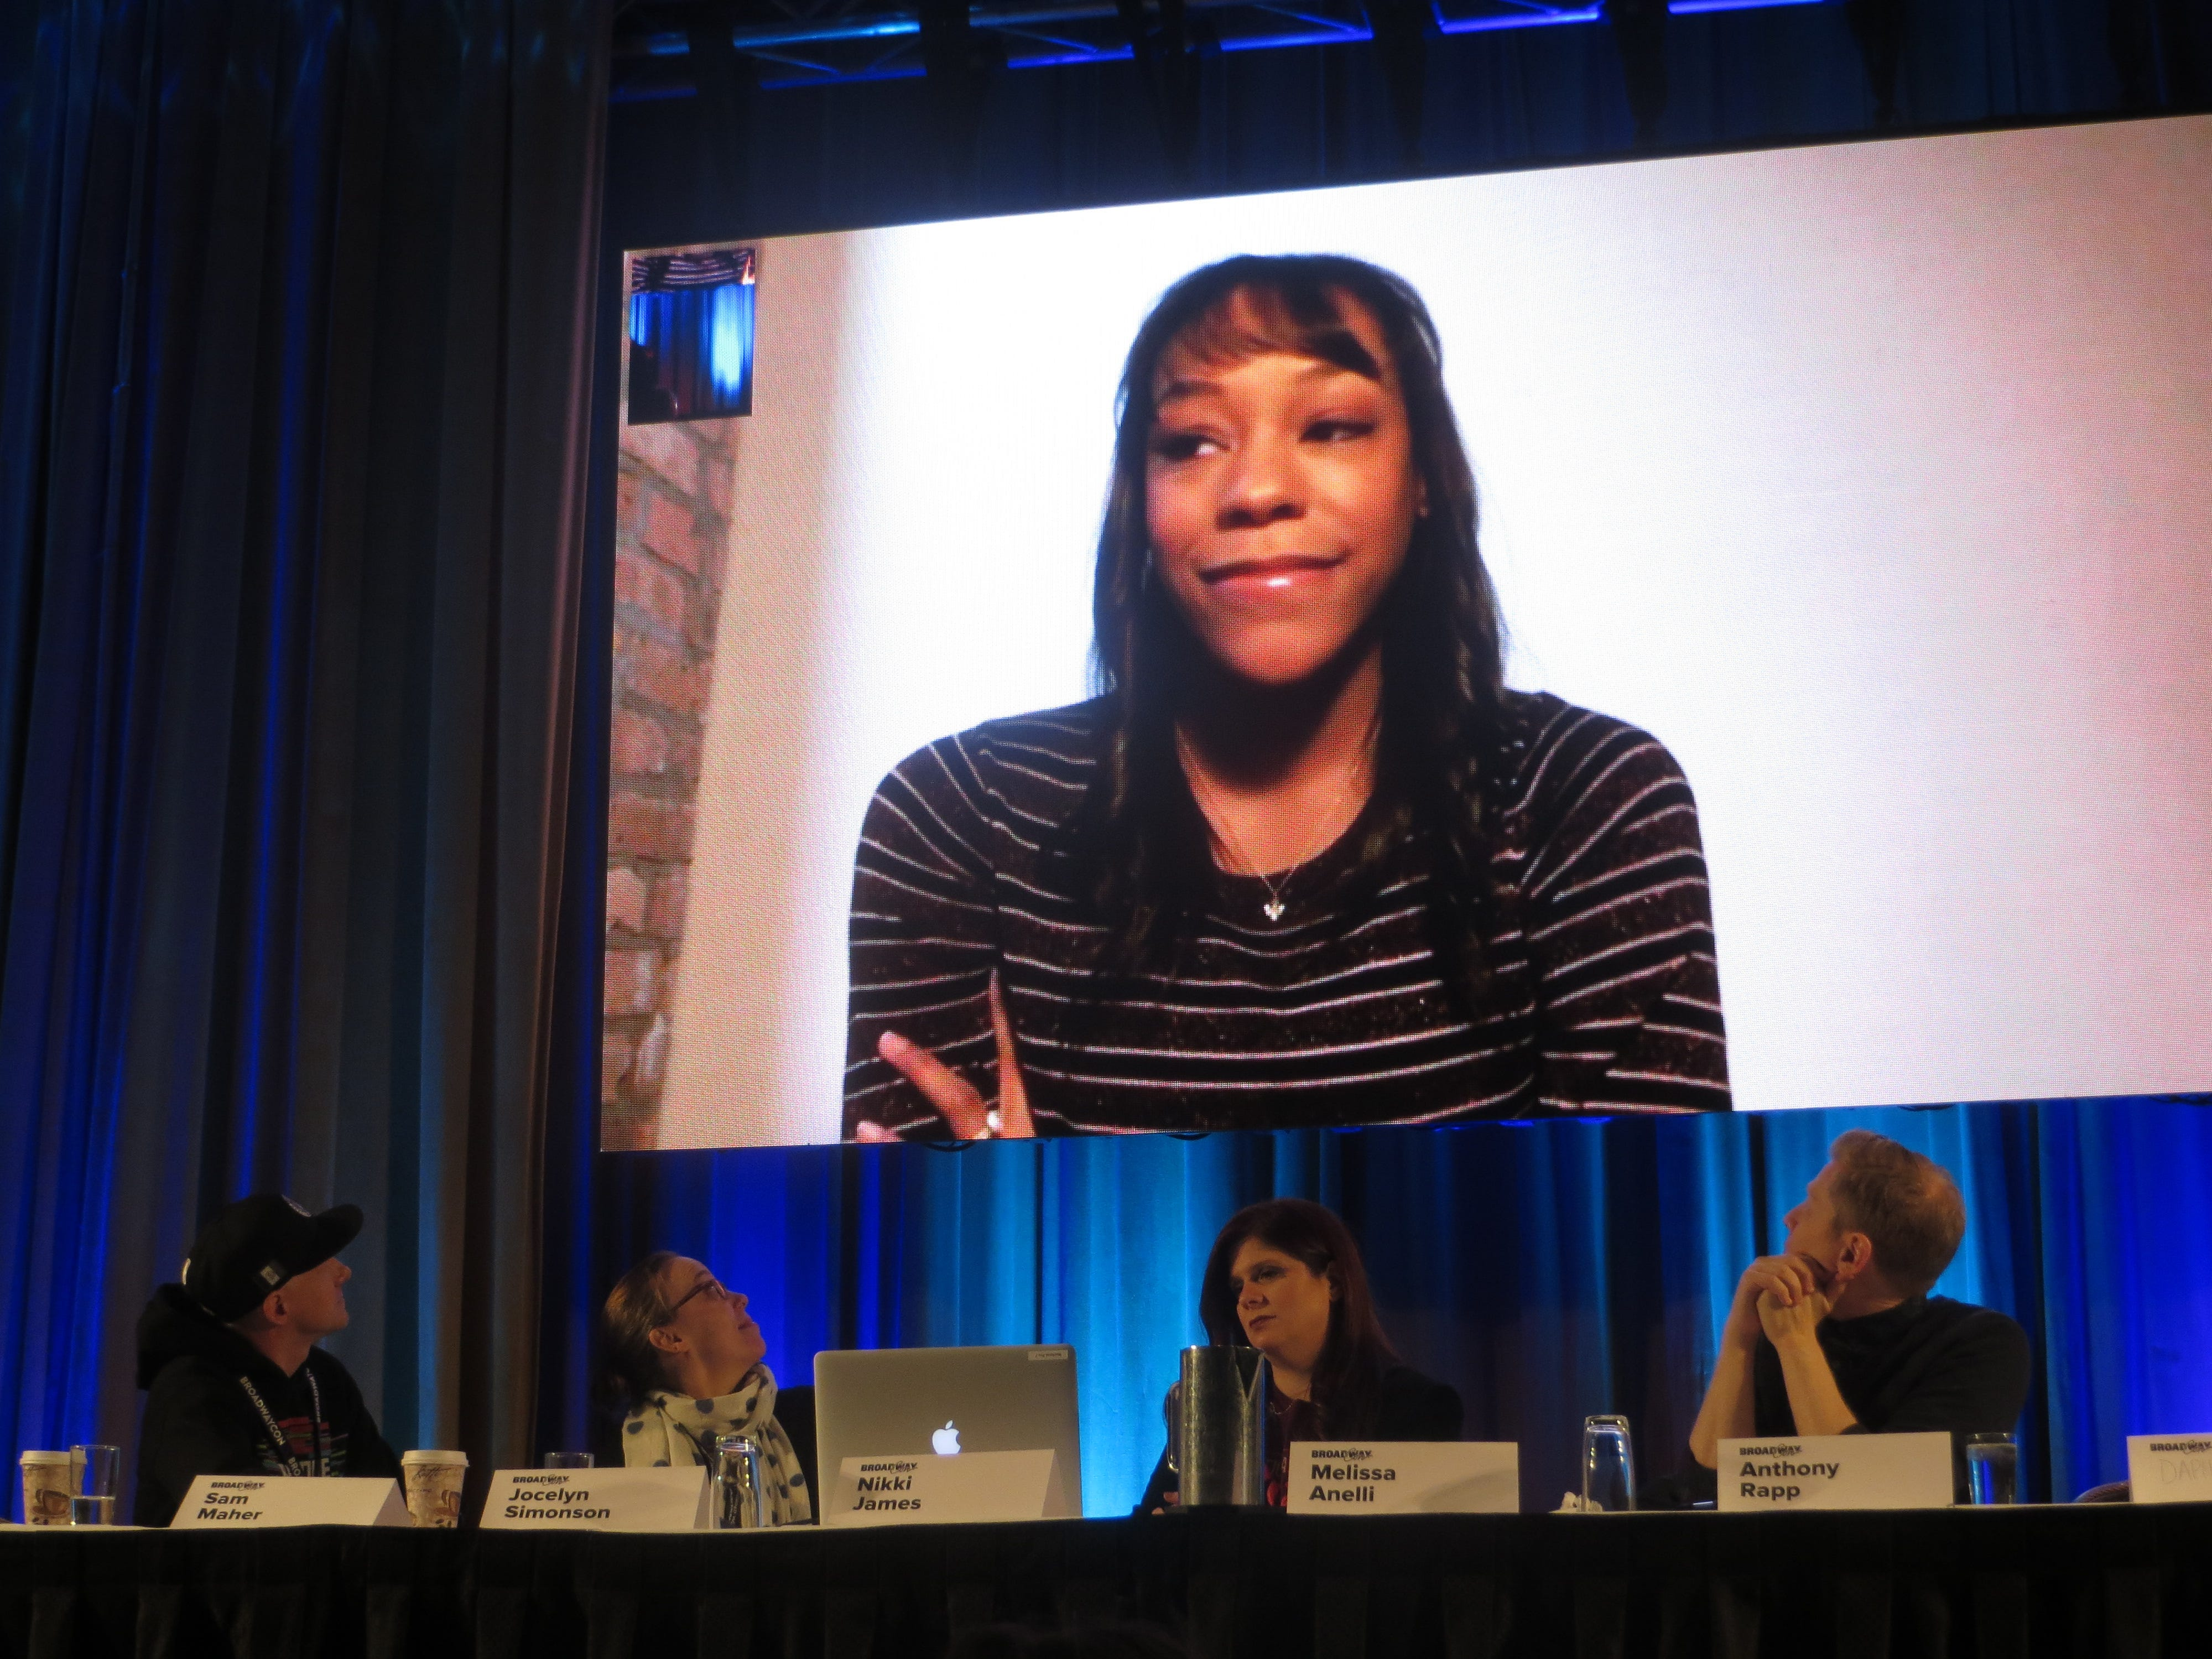 Nikki M. James Facetimes the Rentheads: Where Are We Now panel at BroadwayCon 2019, held Jan. 11 to 13, 2019, at the New York Hilton Midtown in Manhattan.